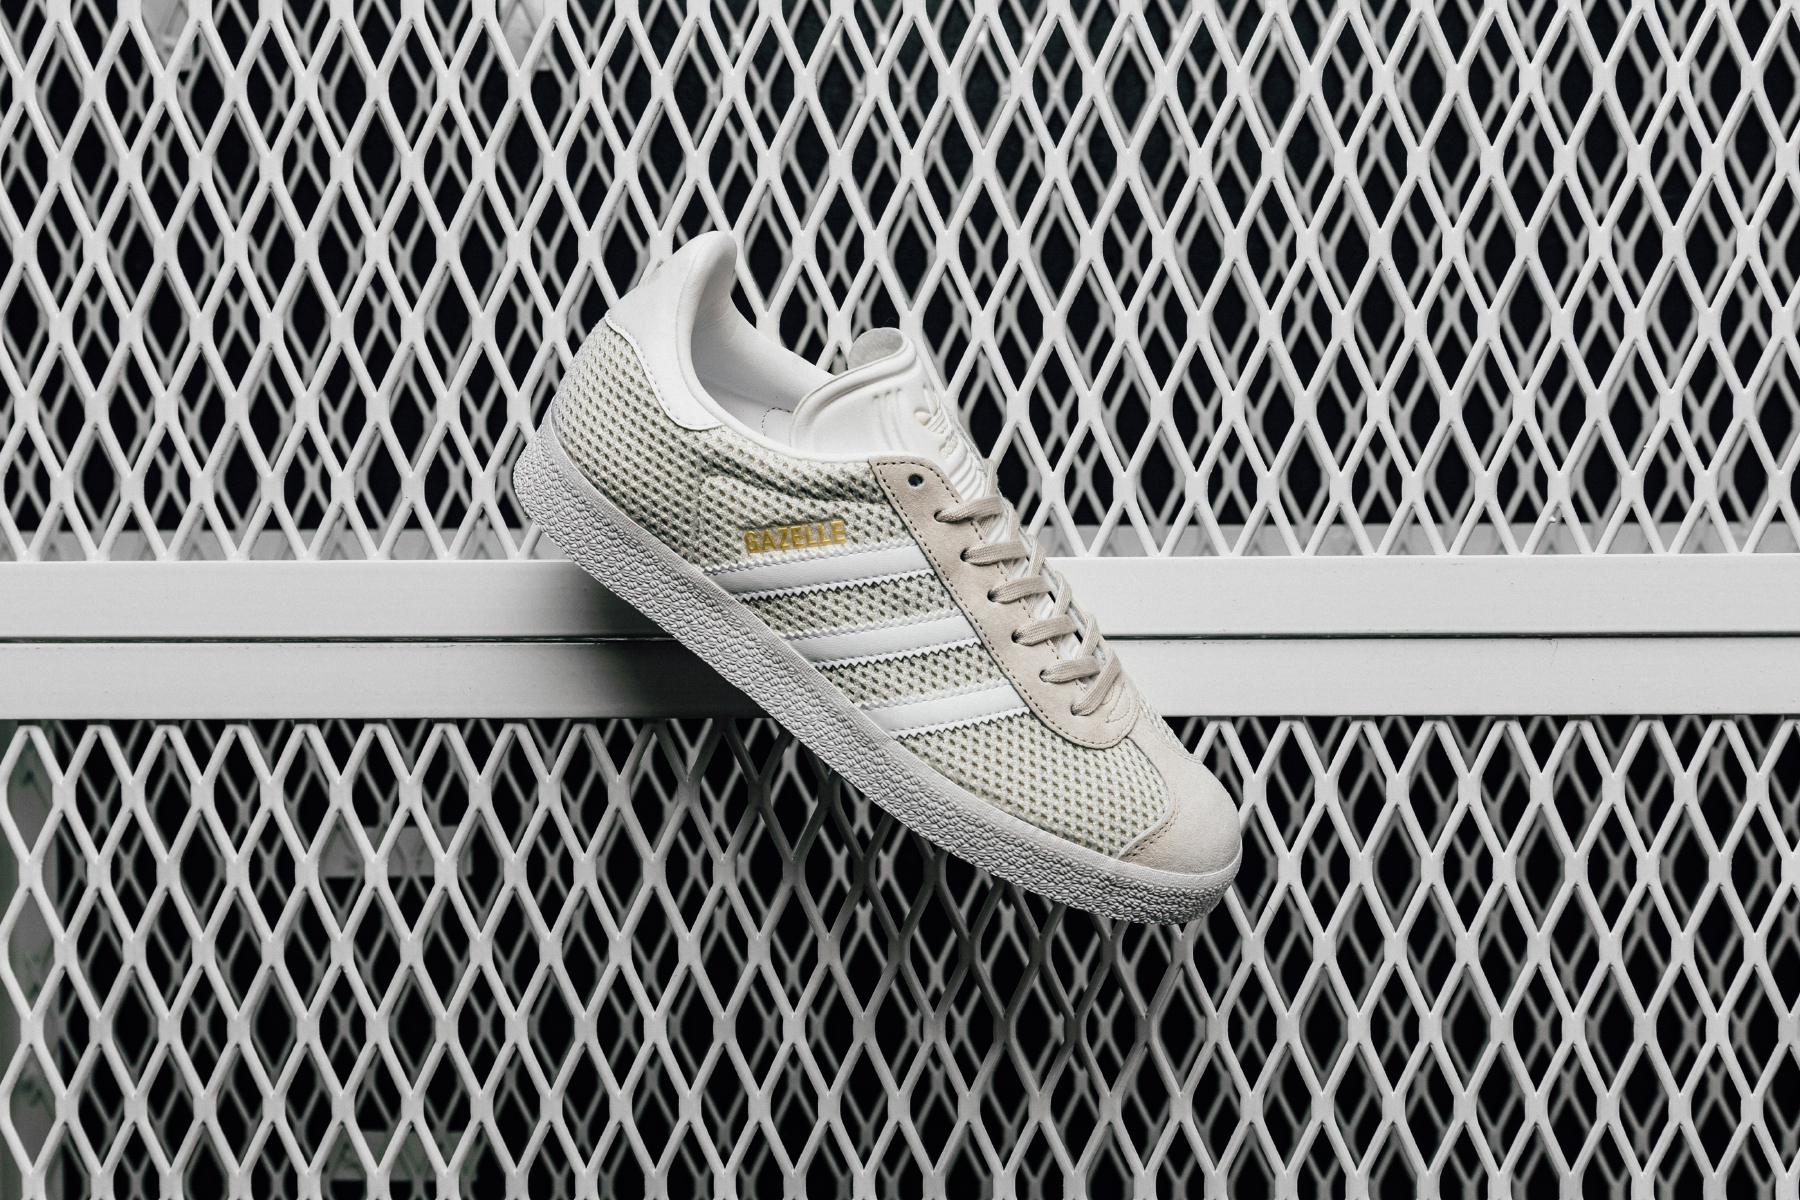 Adidas Womens Gazelle April 17 2017-5.jpg